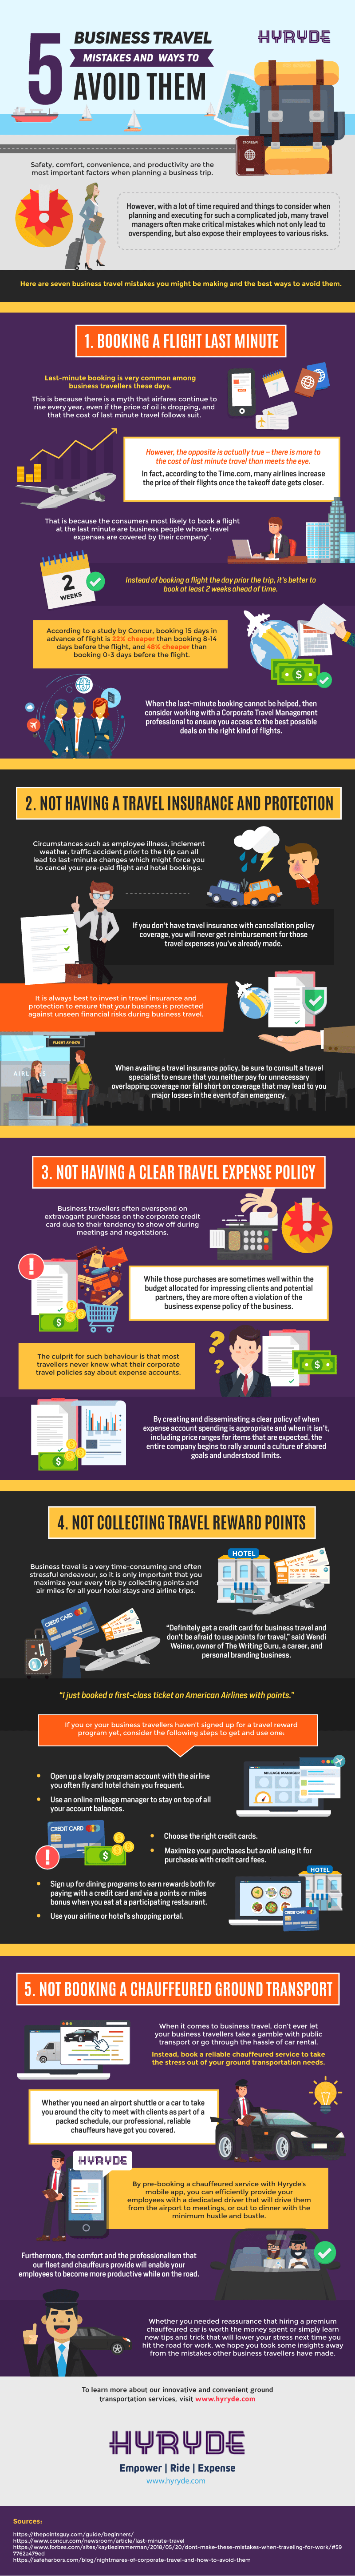 5-Business-Travel-Mistakes-and-Ways-to-Avoid-Them